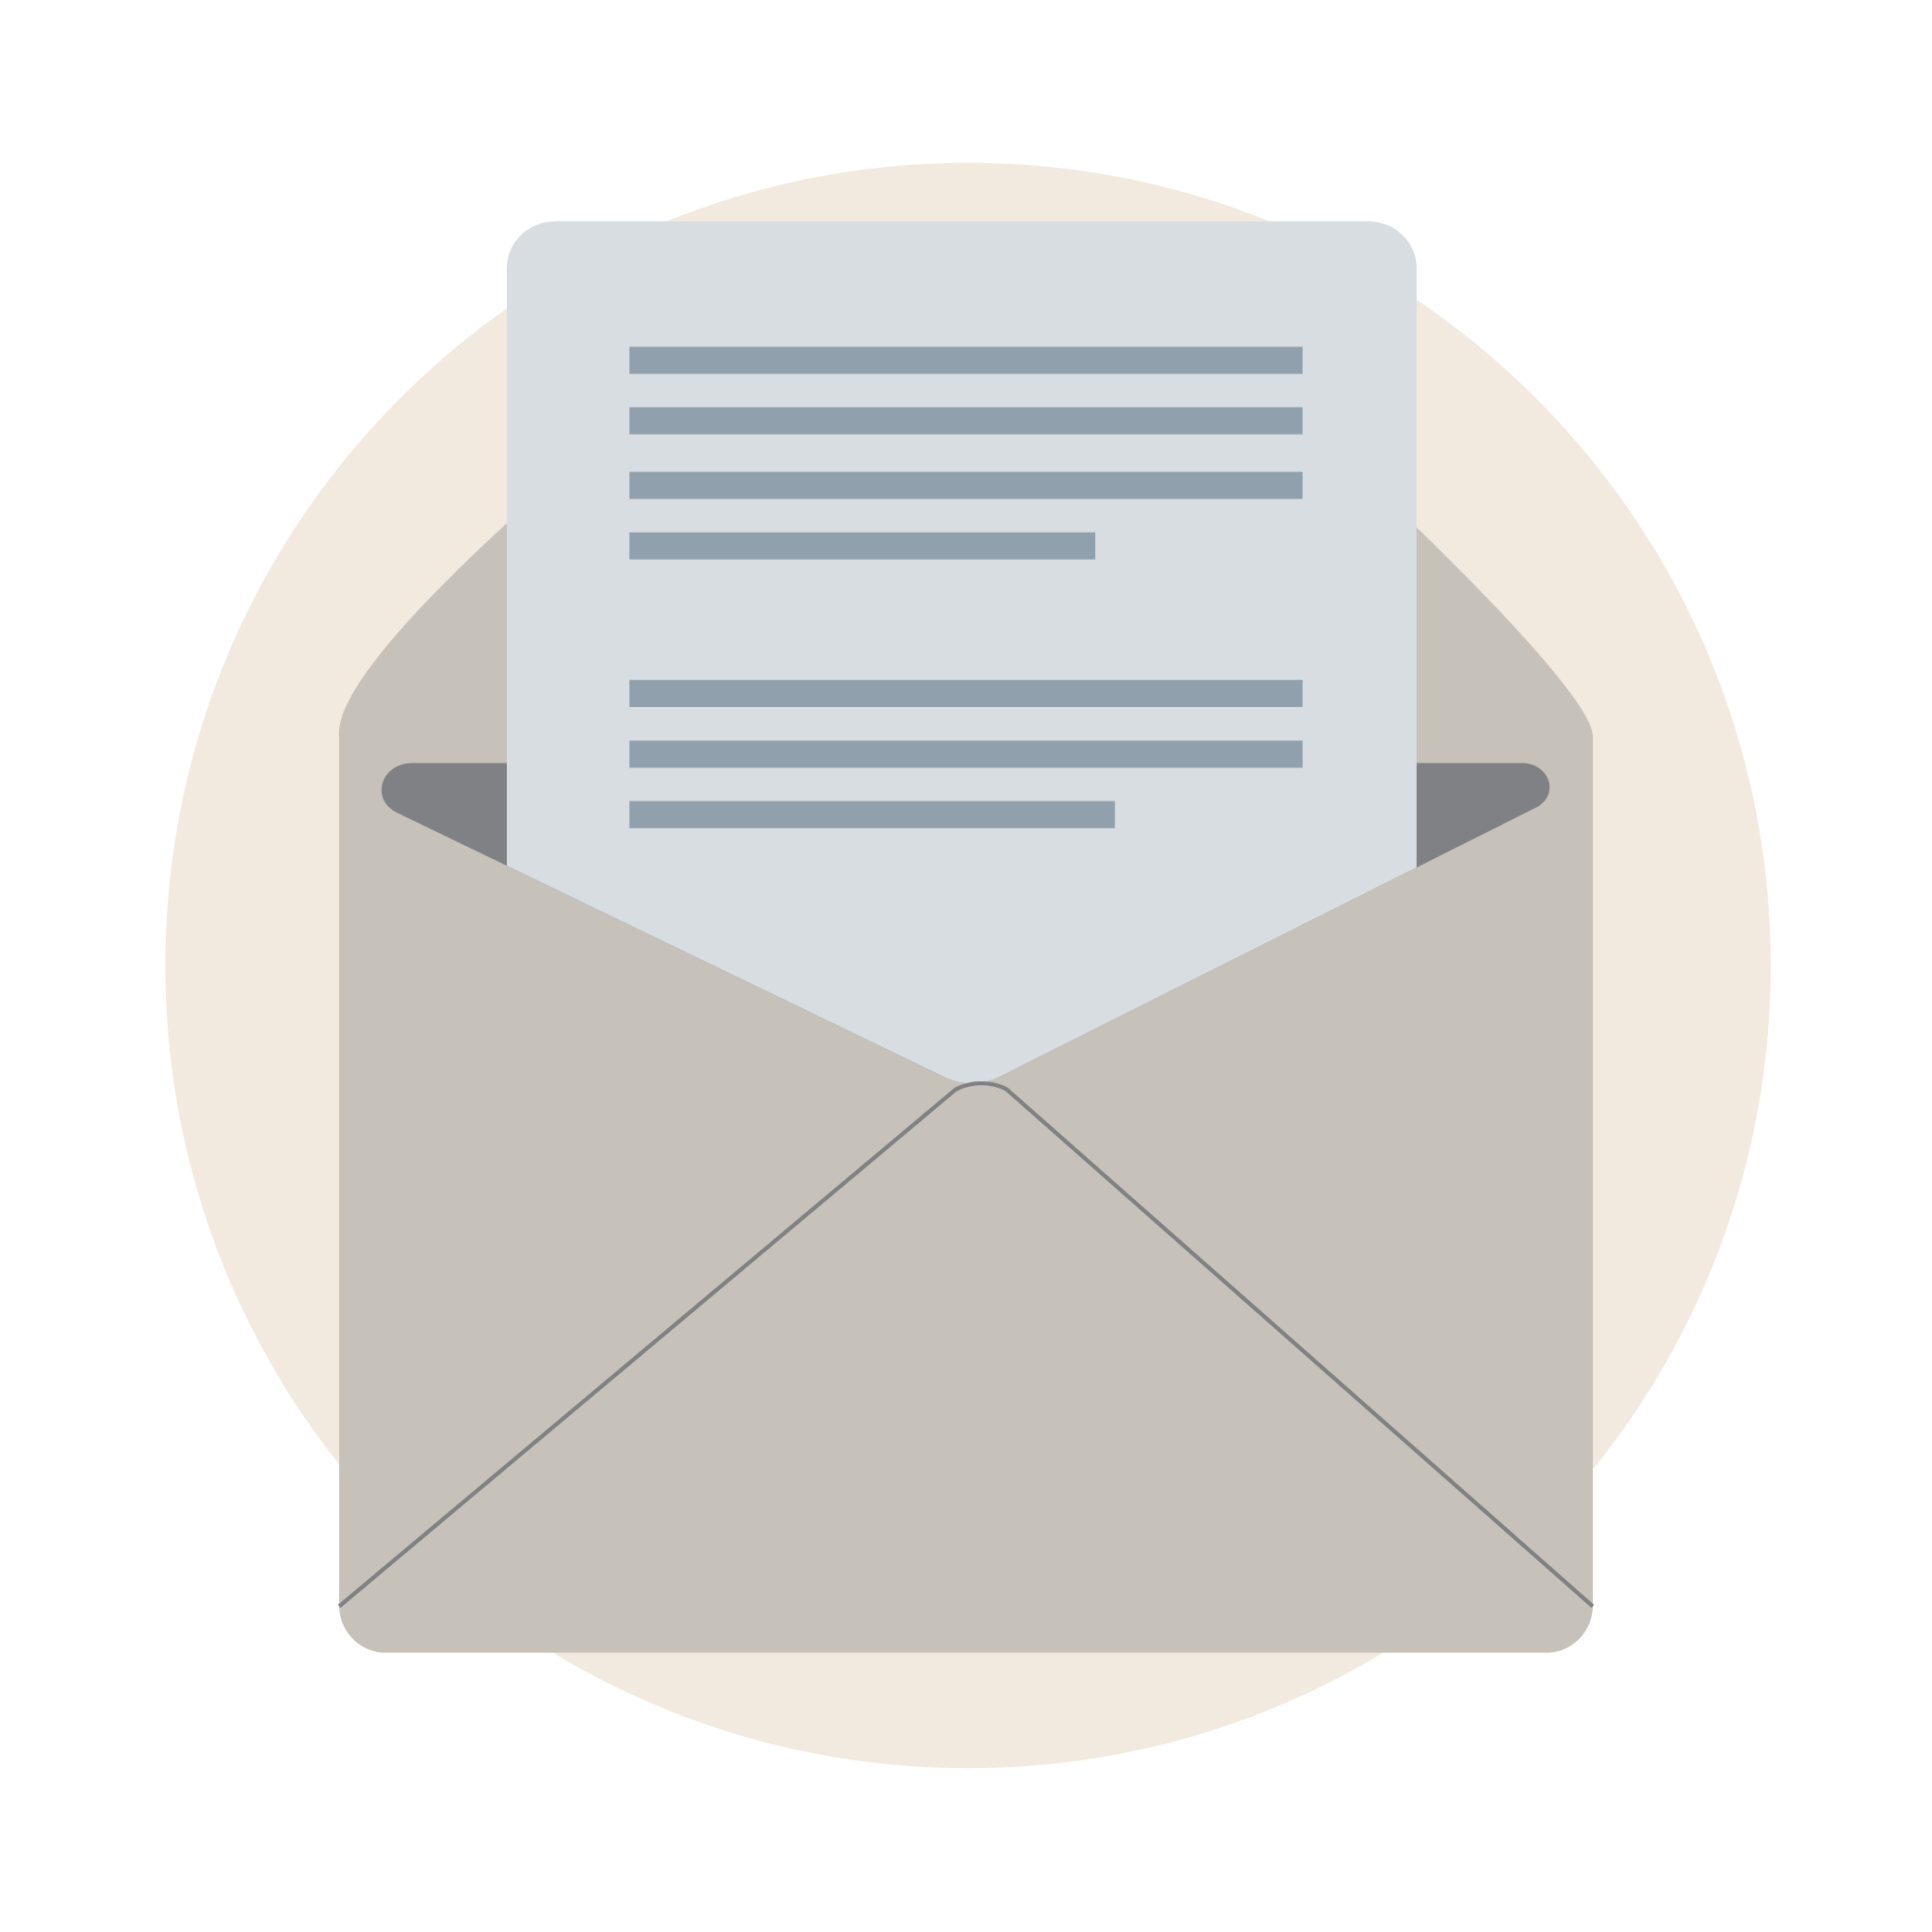 E-mail testing services image